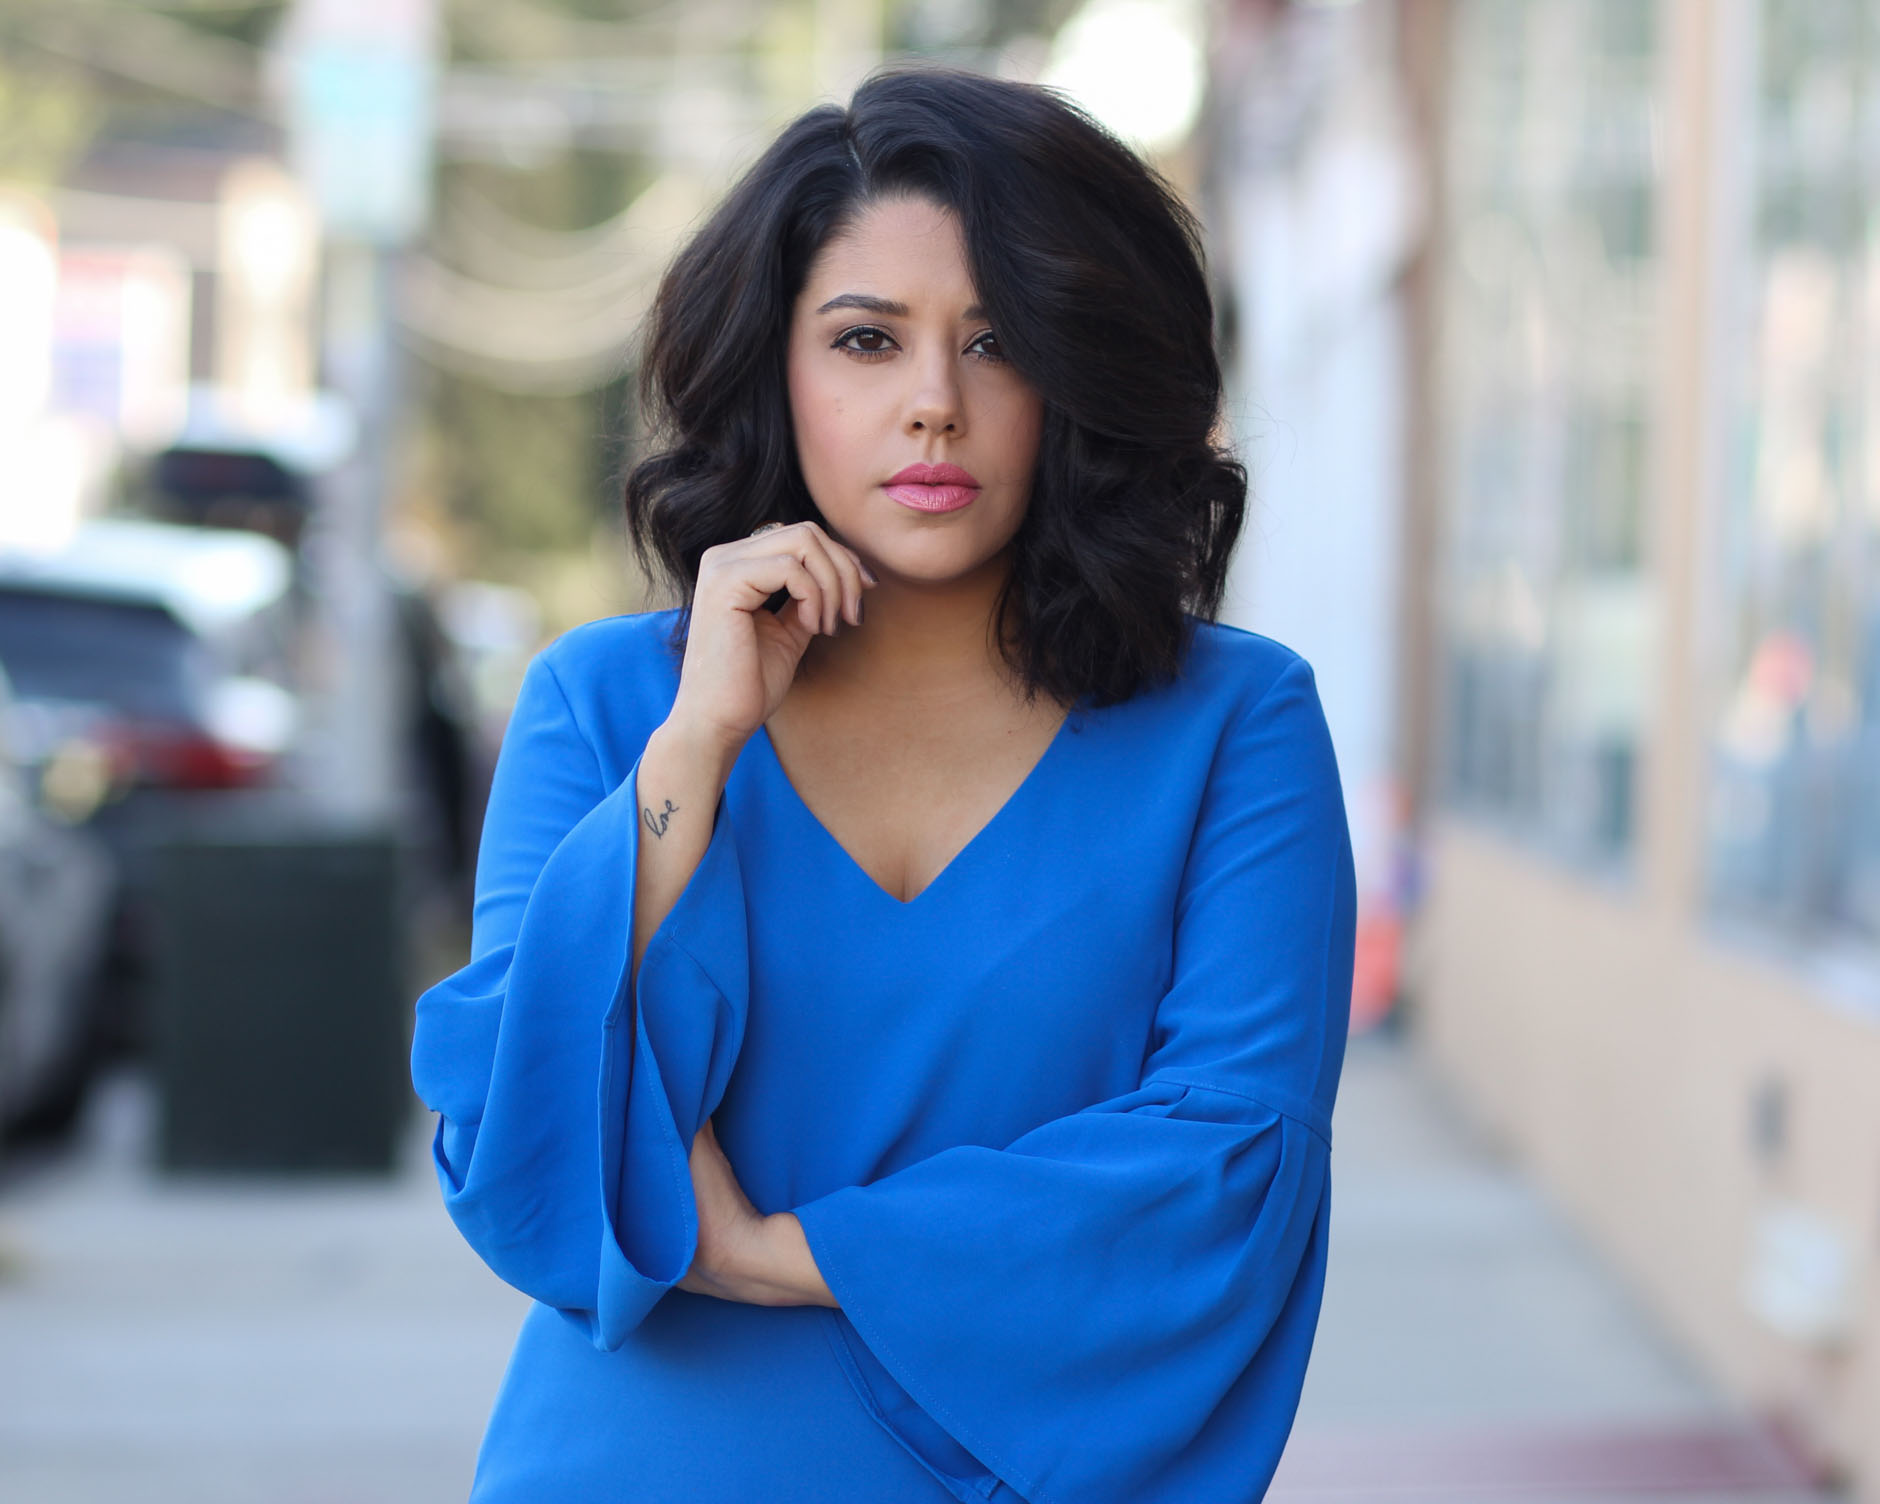 lifestyle blogger naty michele with short curly hair wearing blue